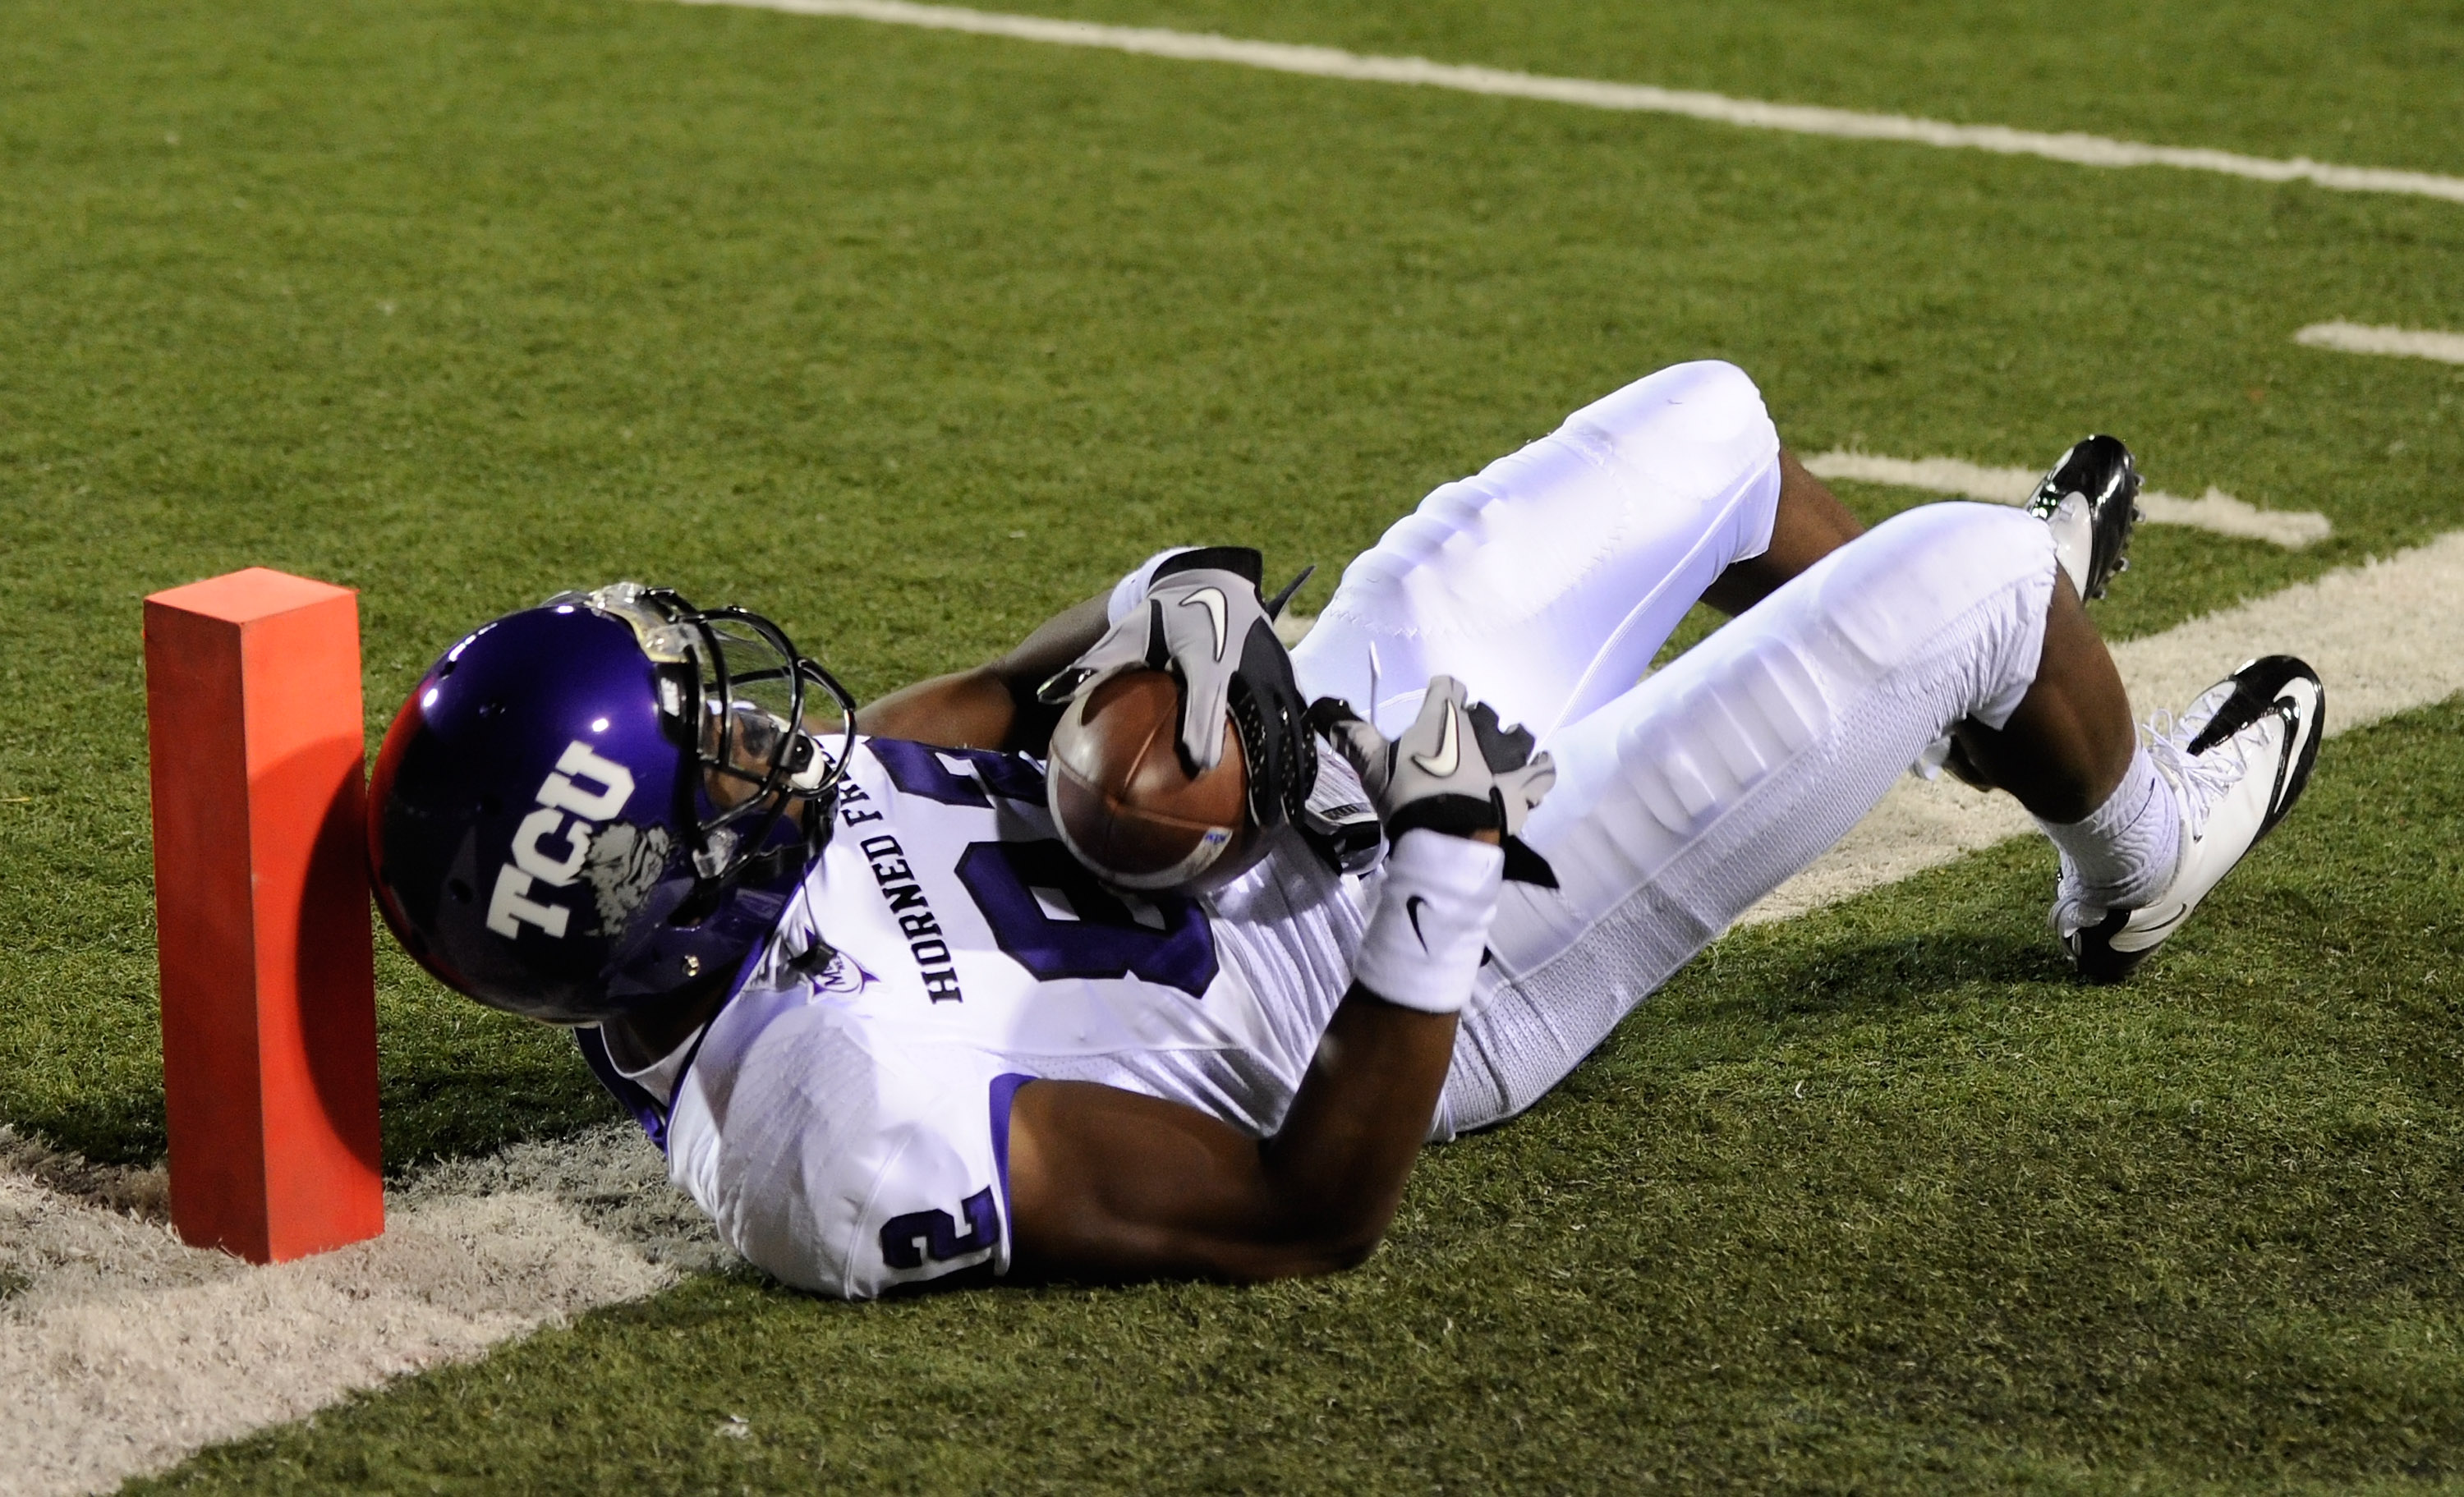 LAS VEGAS - OCTOBER 30:  Josh Boyce #82 of the Texas Christian University Horned Frogs is down just short of the end zone after making a reception against the UNLV Rebels during the second quarter of their game at Sam Boyd Stadium October 30, 2010 in Las